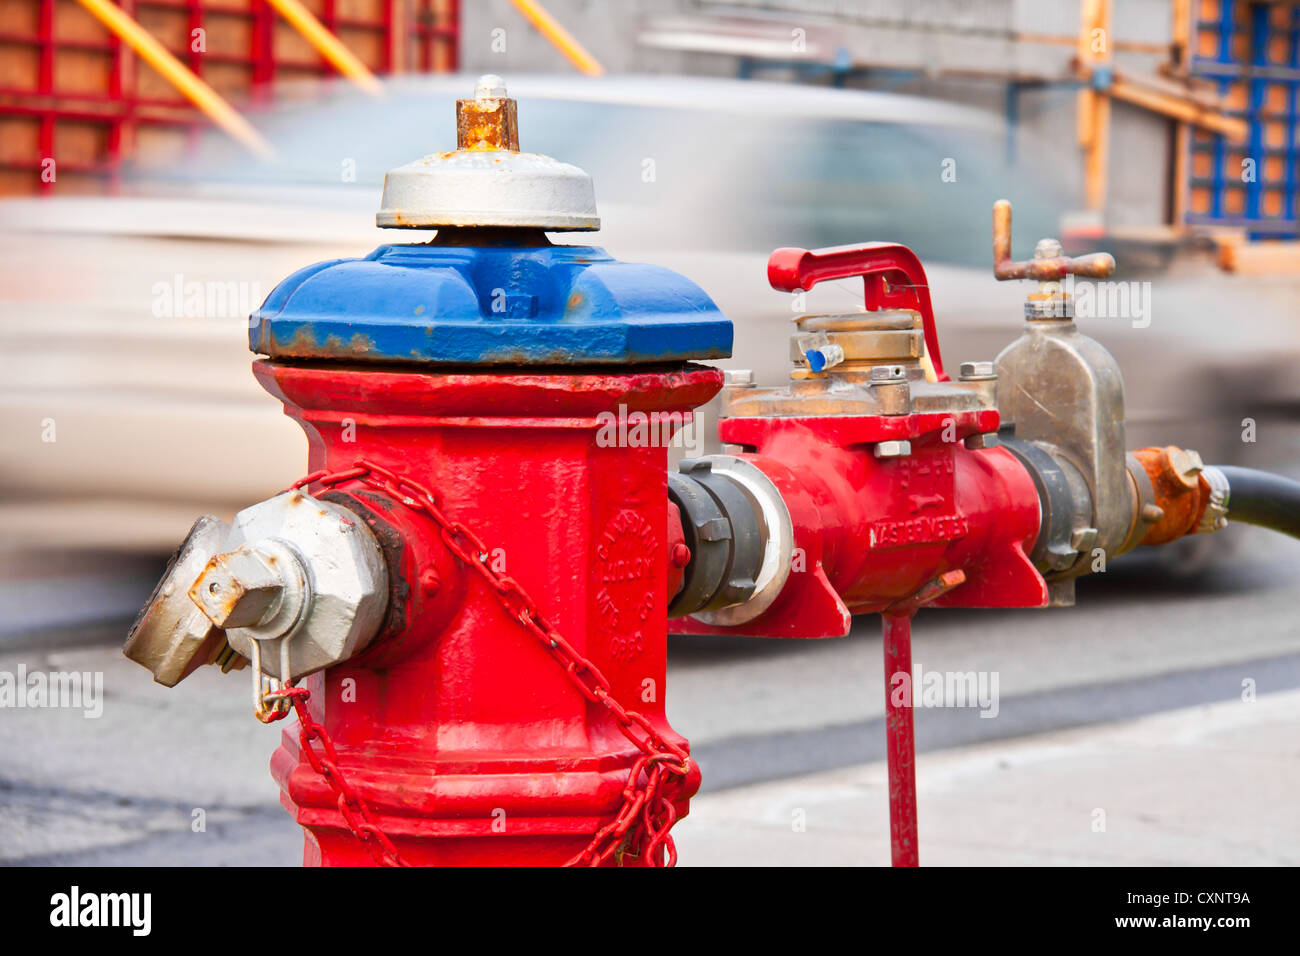 Red fire plug with a lot of other devices and handles isolated by a white car in movement Stock Photo